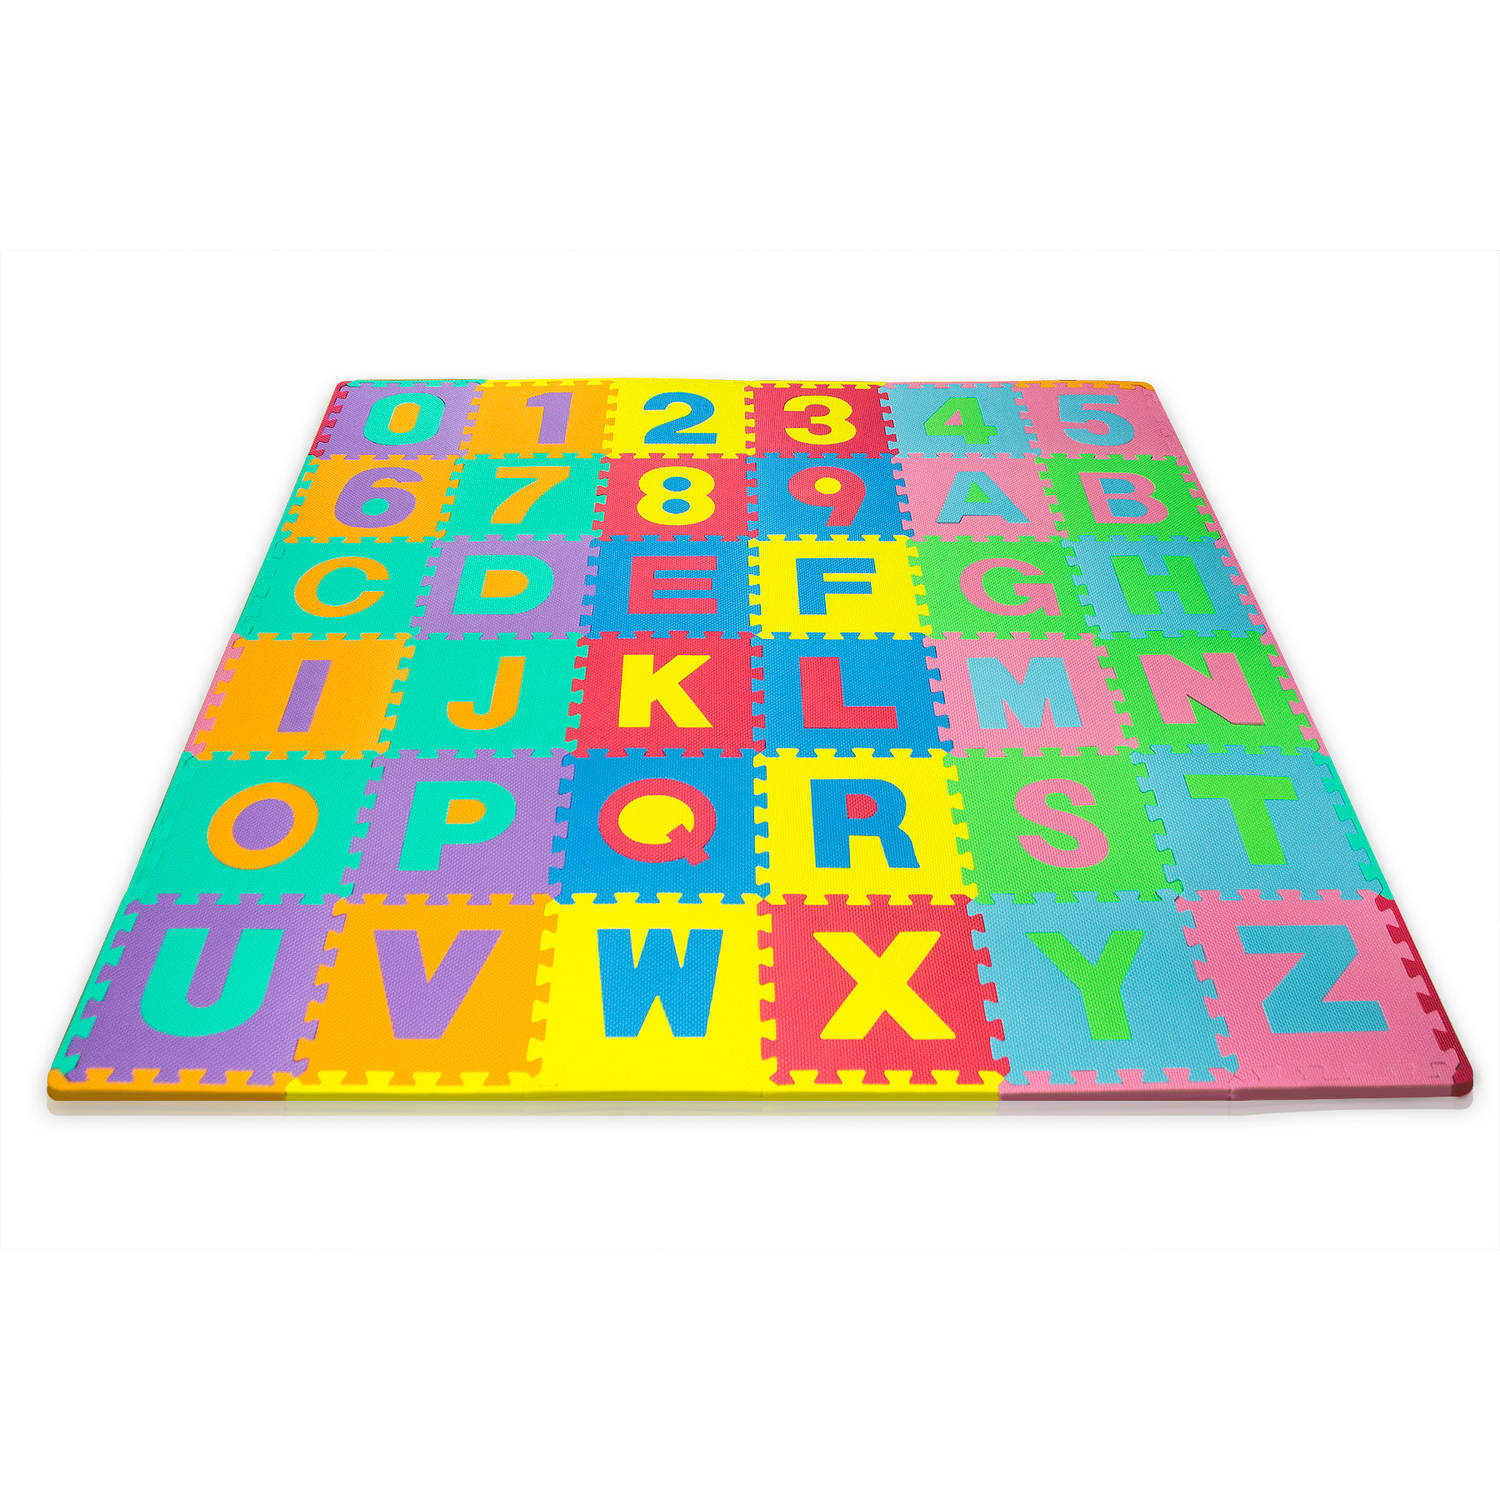 26 Piece Foam Floor Alphabet Puzzle Mat for Kids Multi color